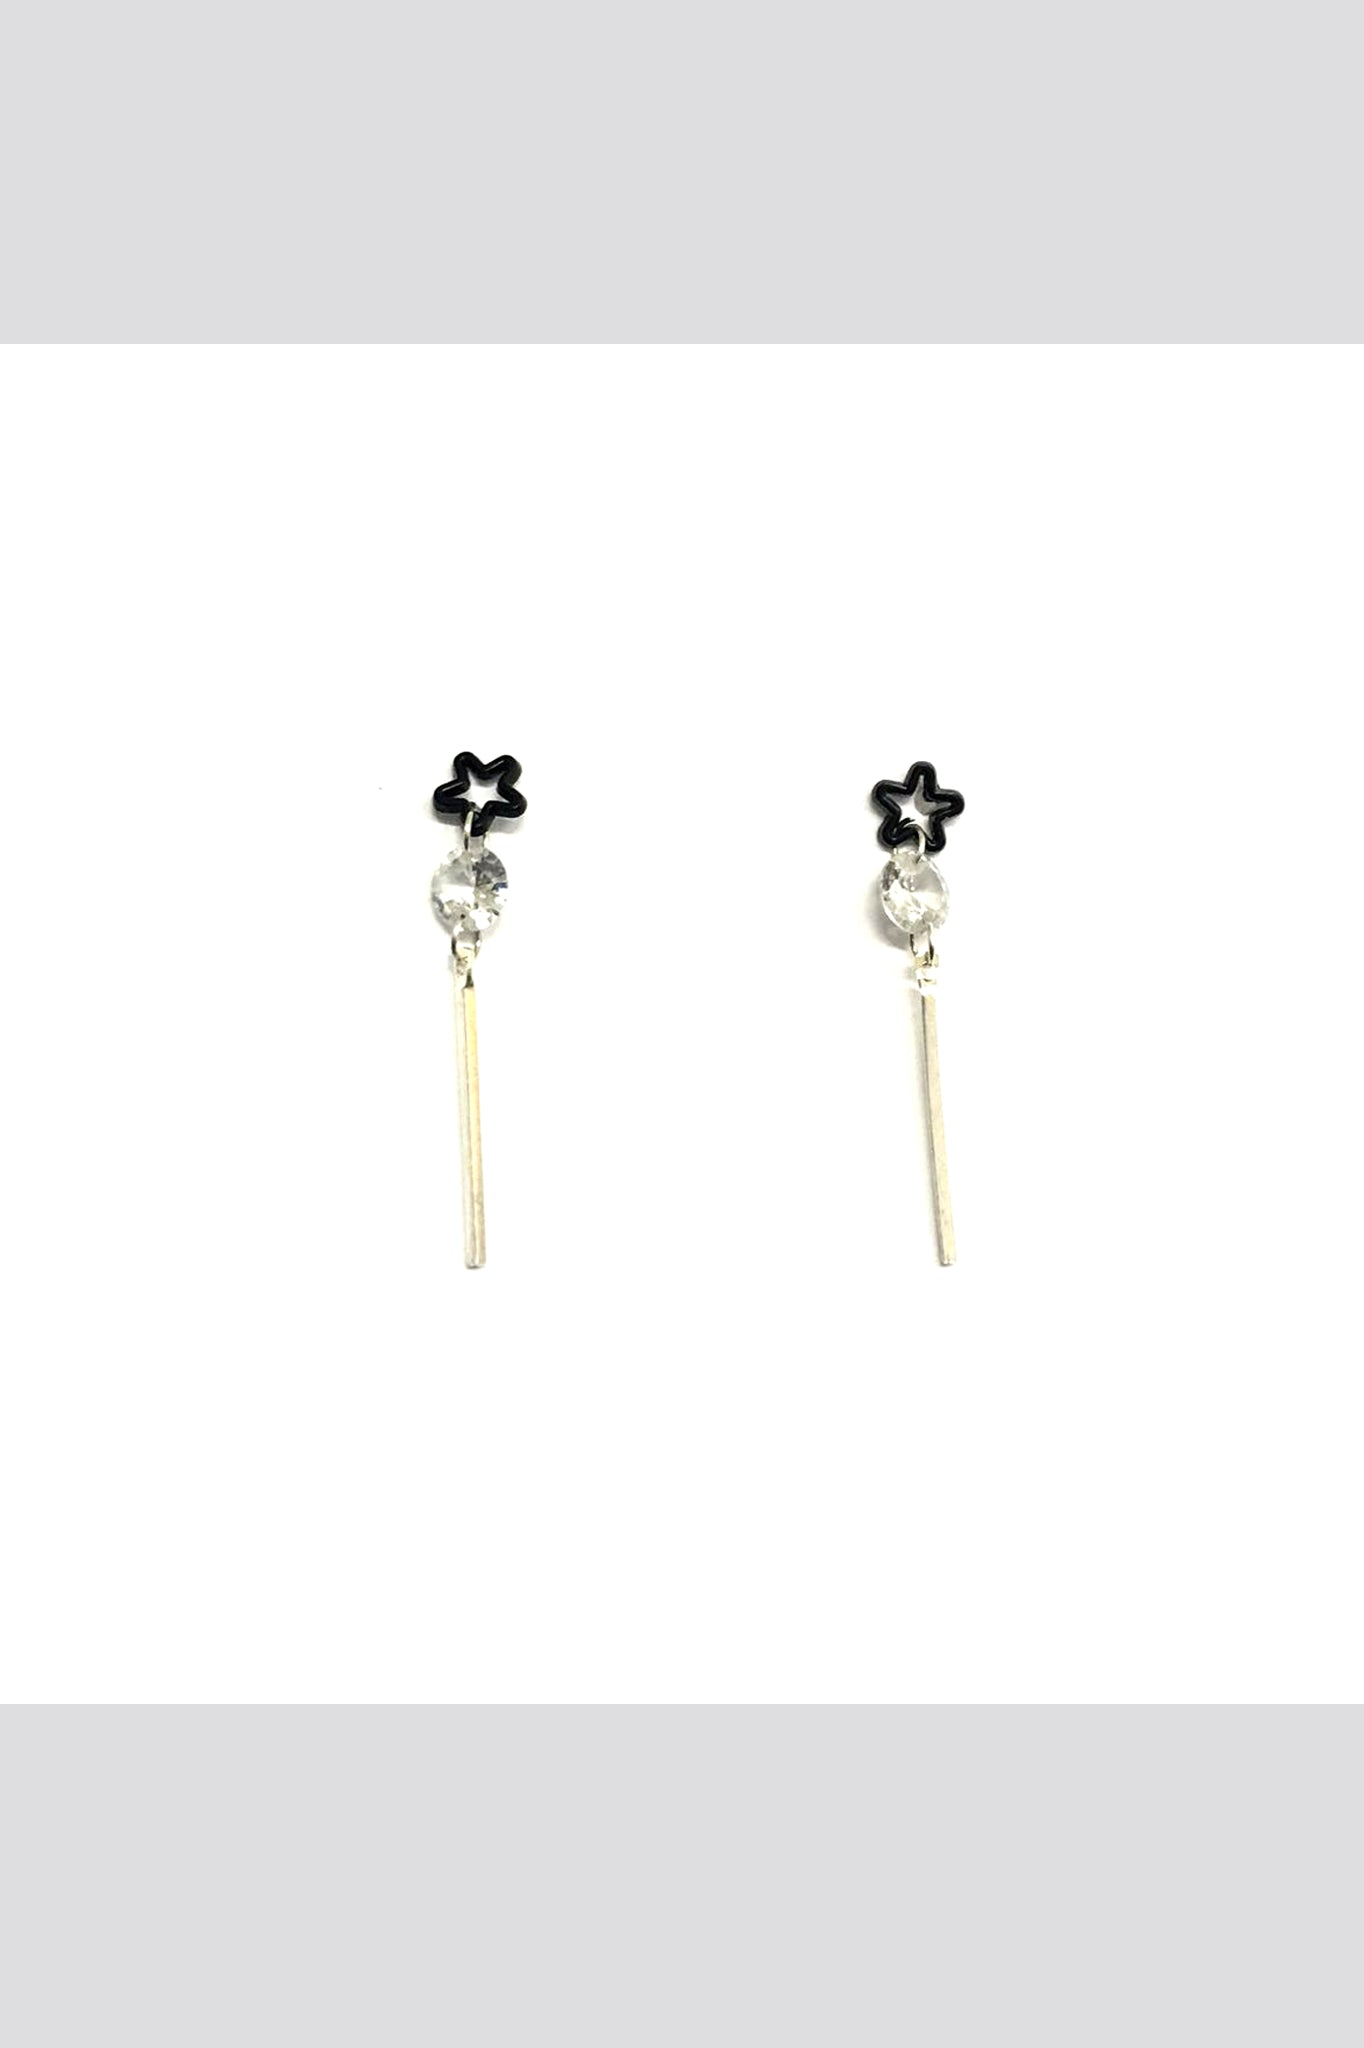 Earring-Design-21